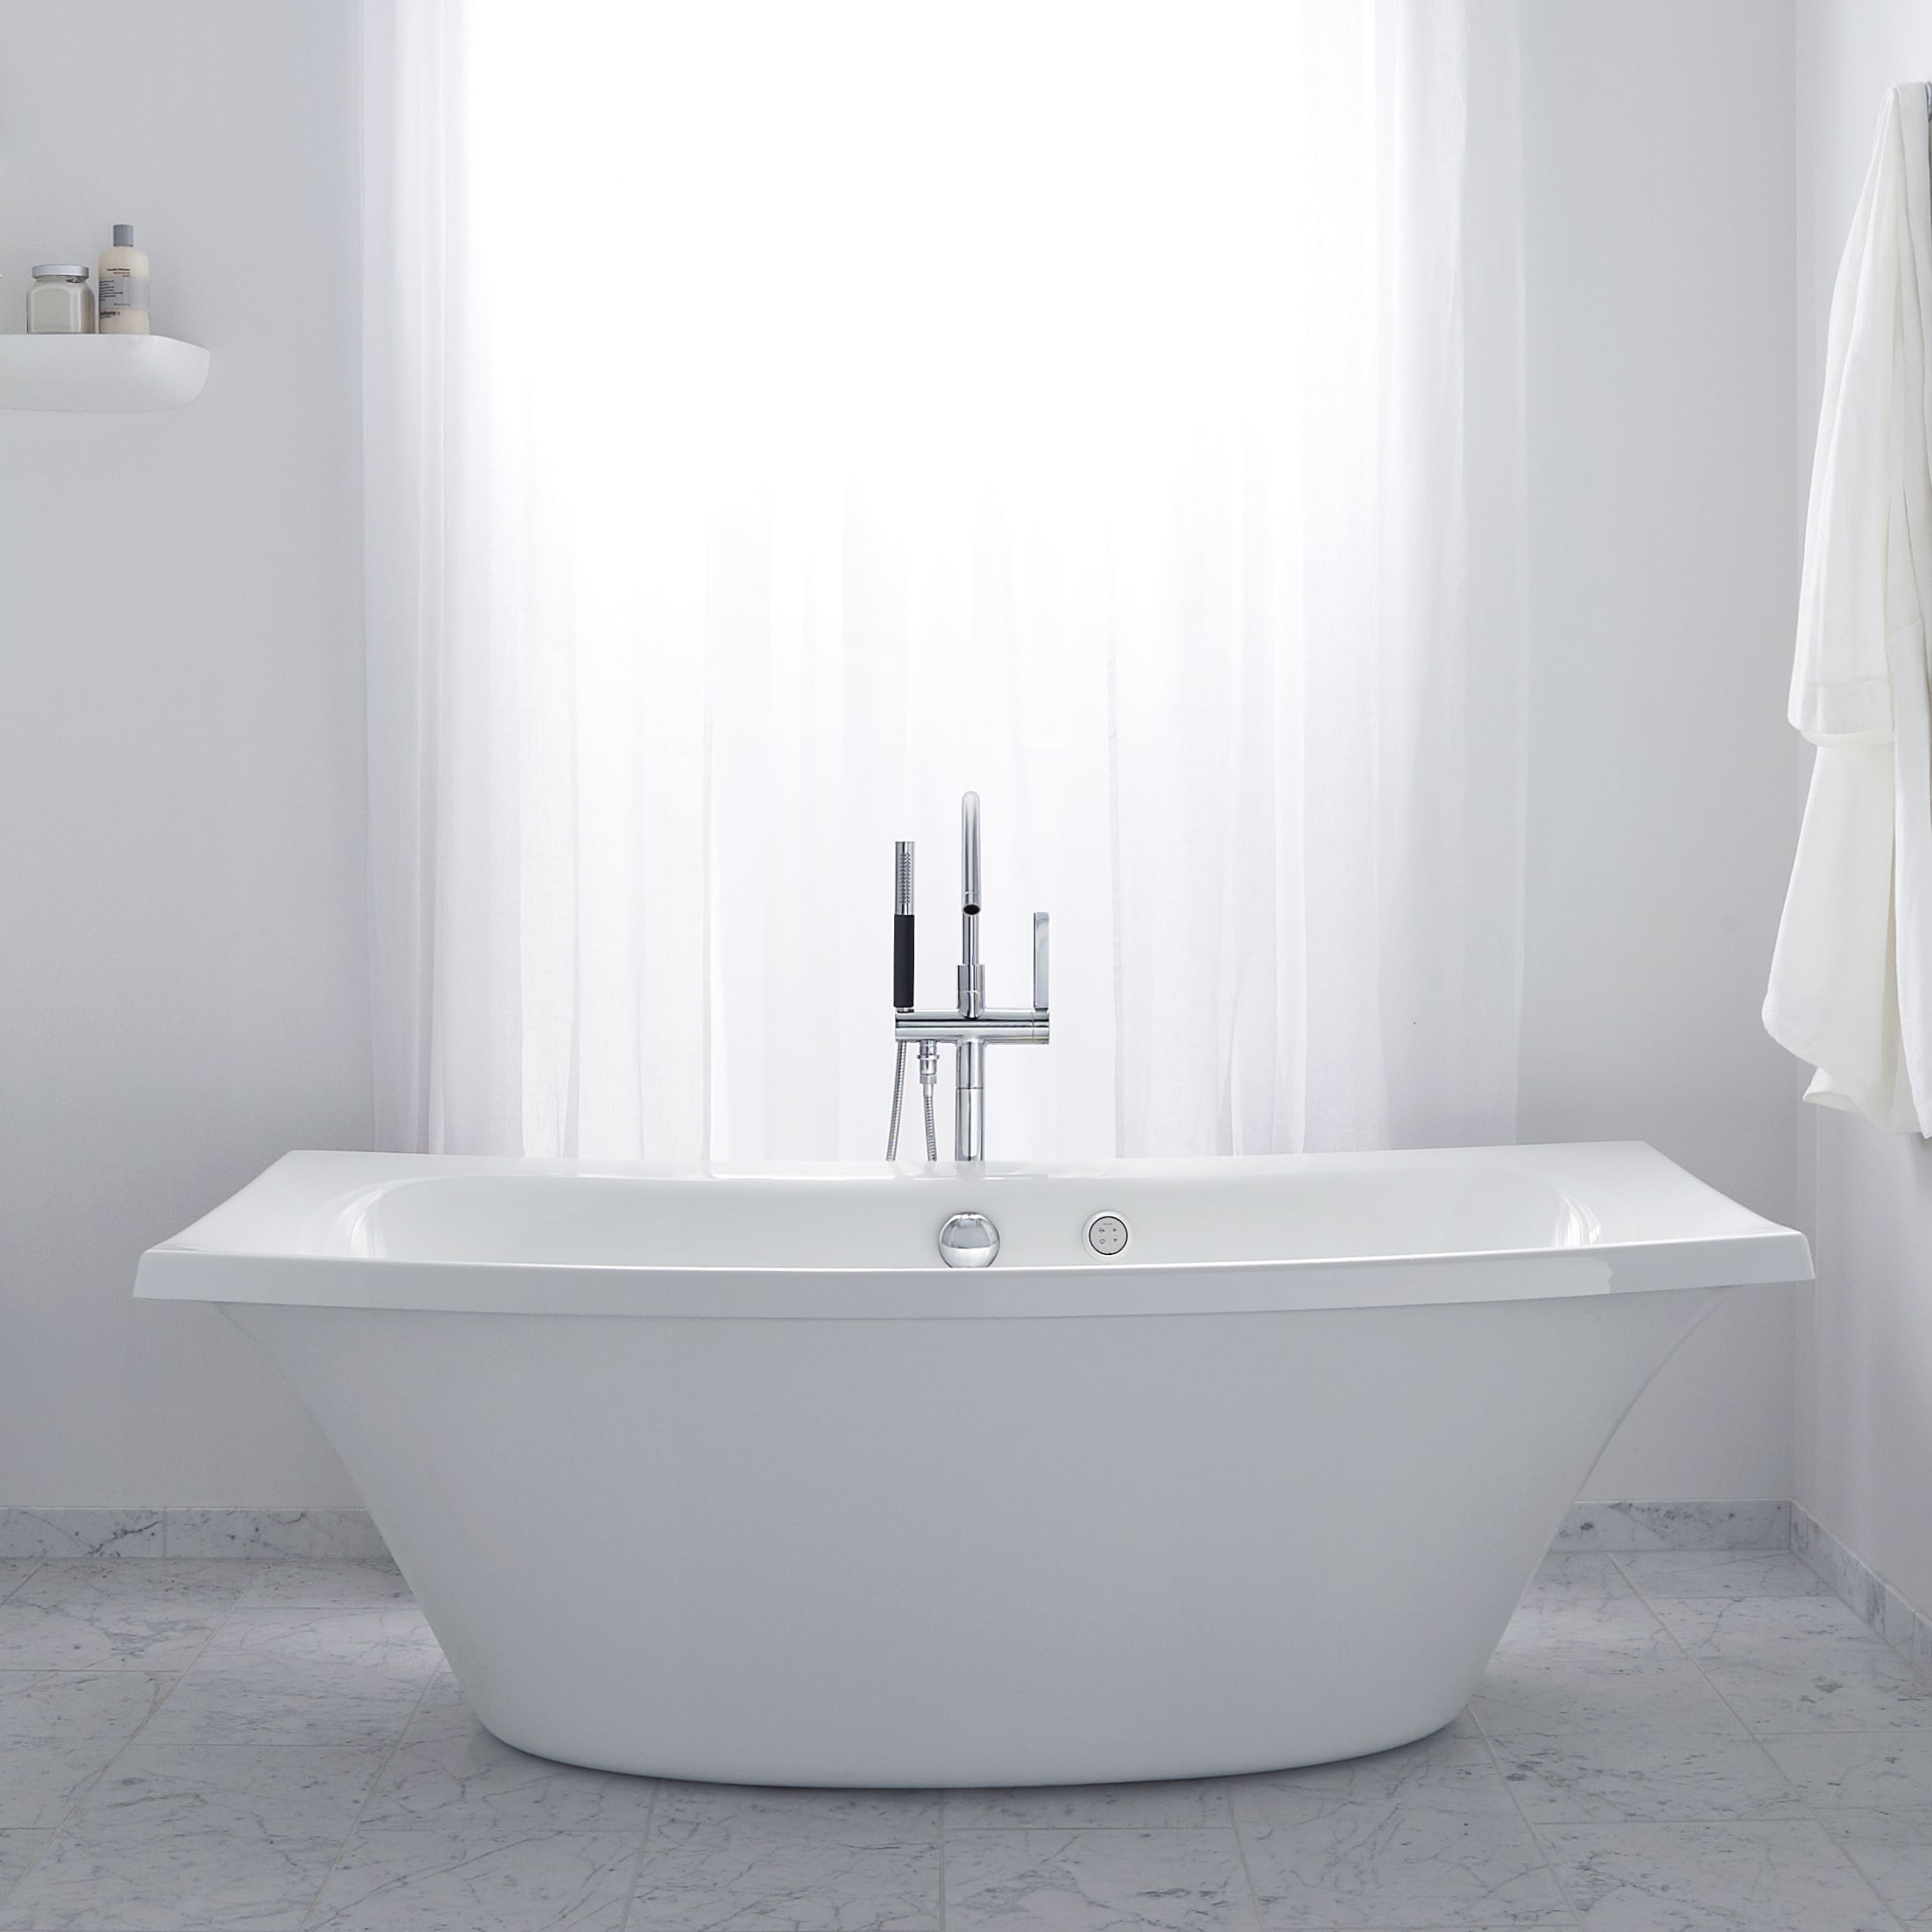 Kohler K 14037 47 Almond 72 X 36 Freestanding Soaking Tub With Center Drain From The Escale Collection Faucet